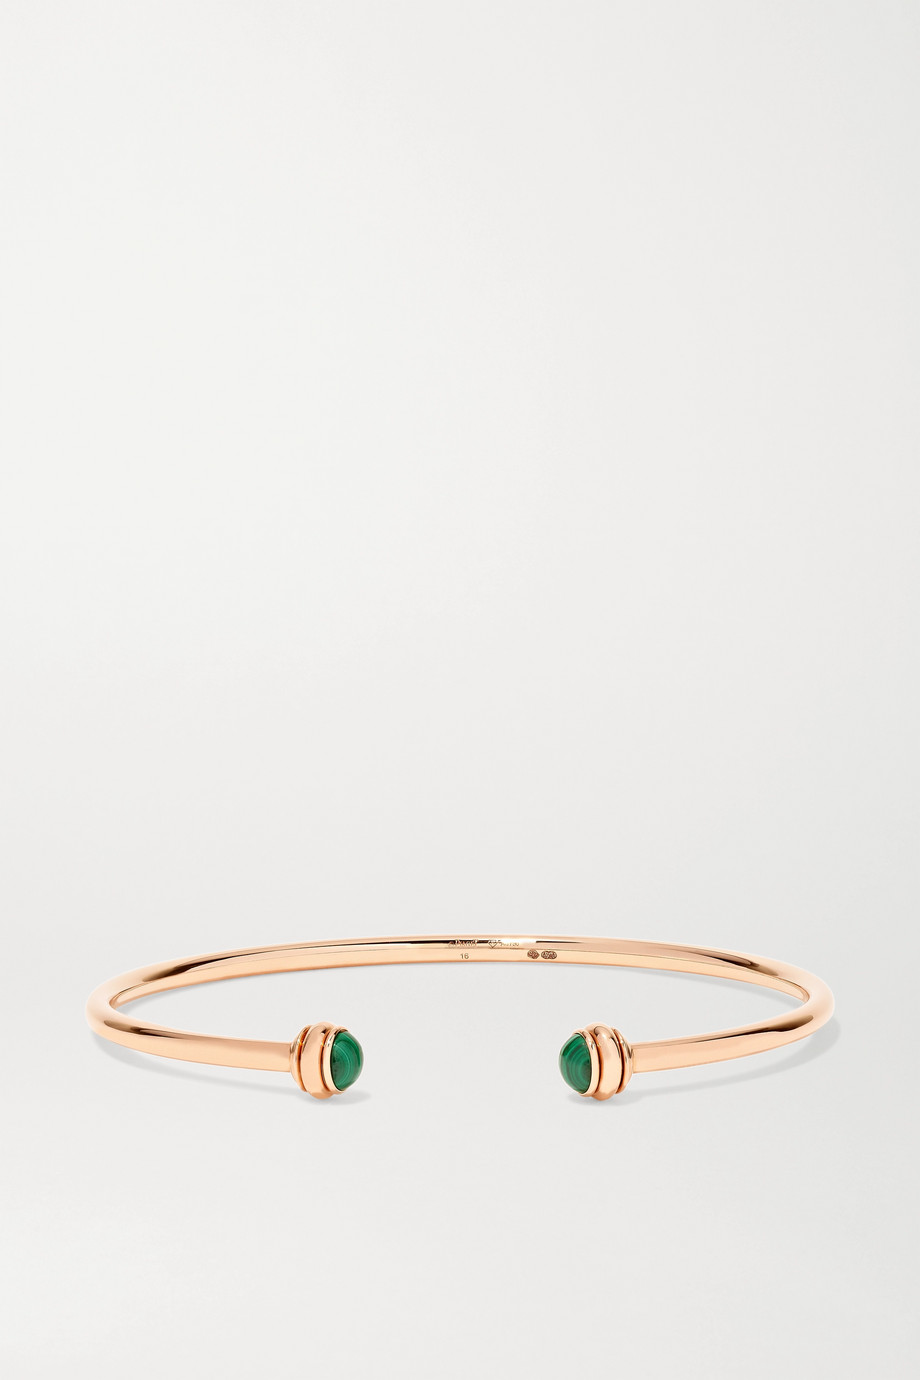 Piaget Possession 18-karat rose gold malachite cuff